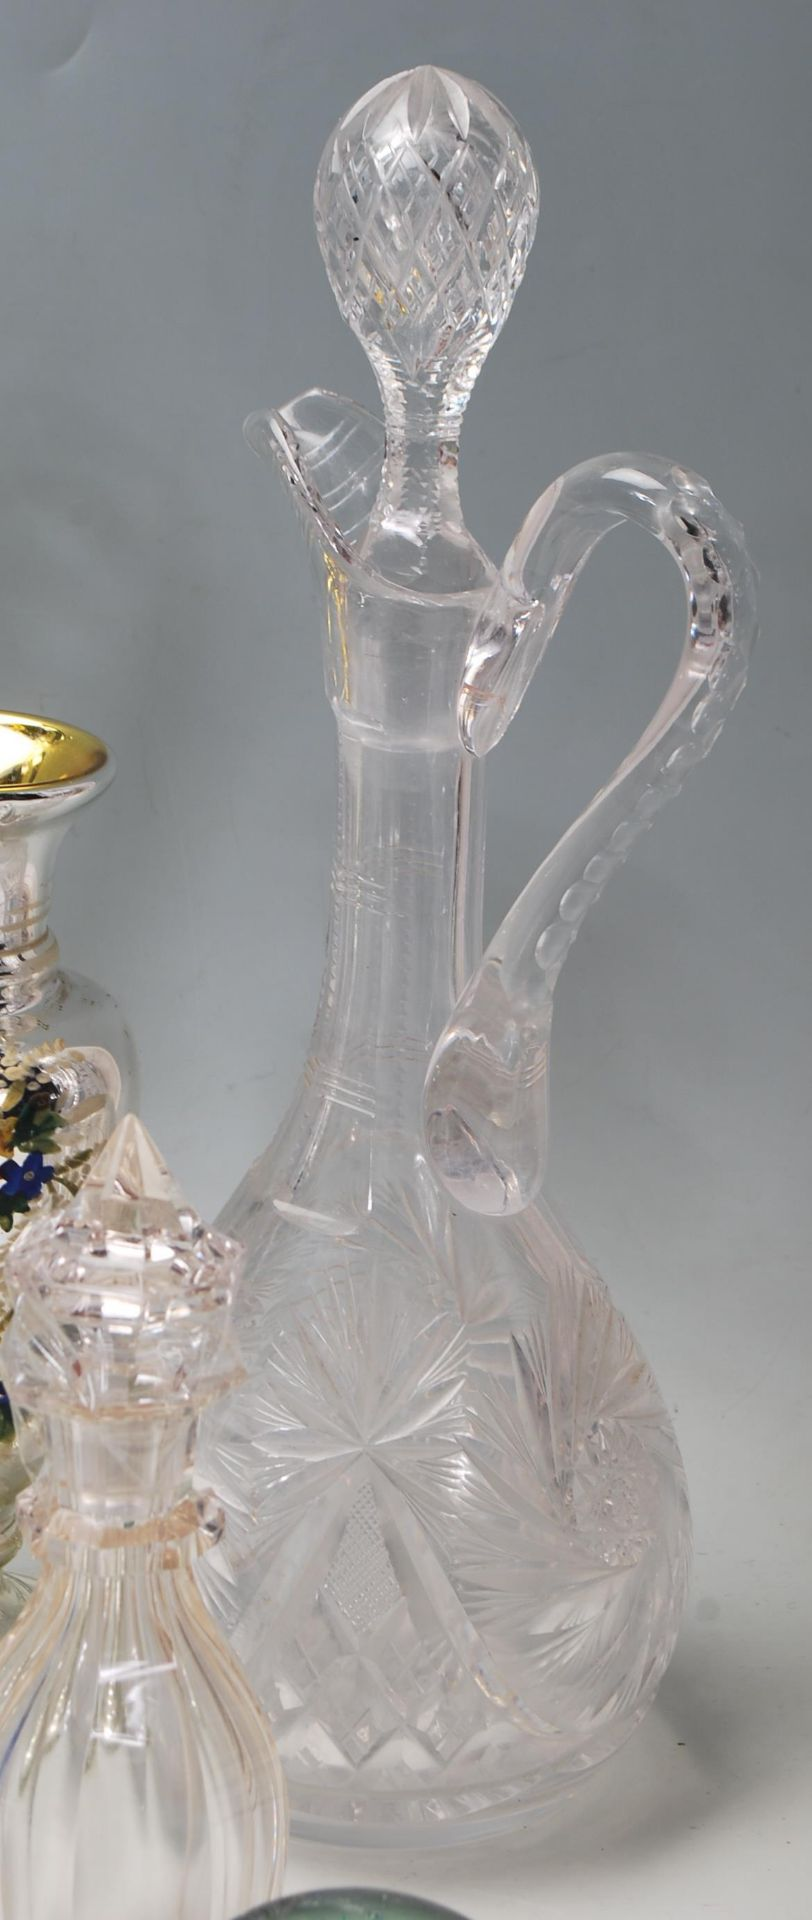 LARGE COLELCTION OF 10TH CENTURY AND LATER CRYSTAL GLASS - Image 2 of 10